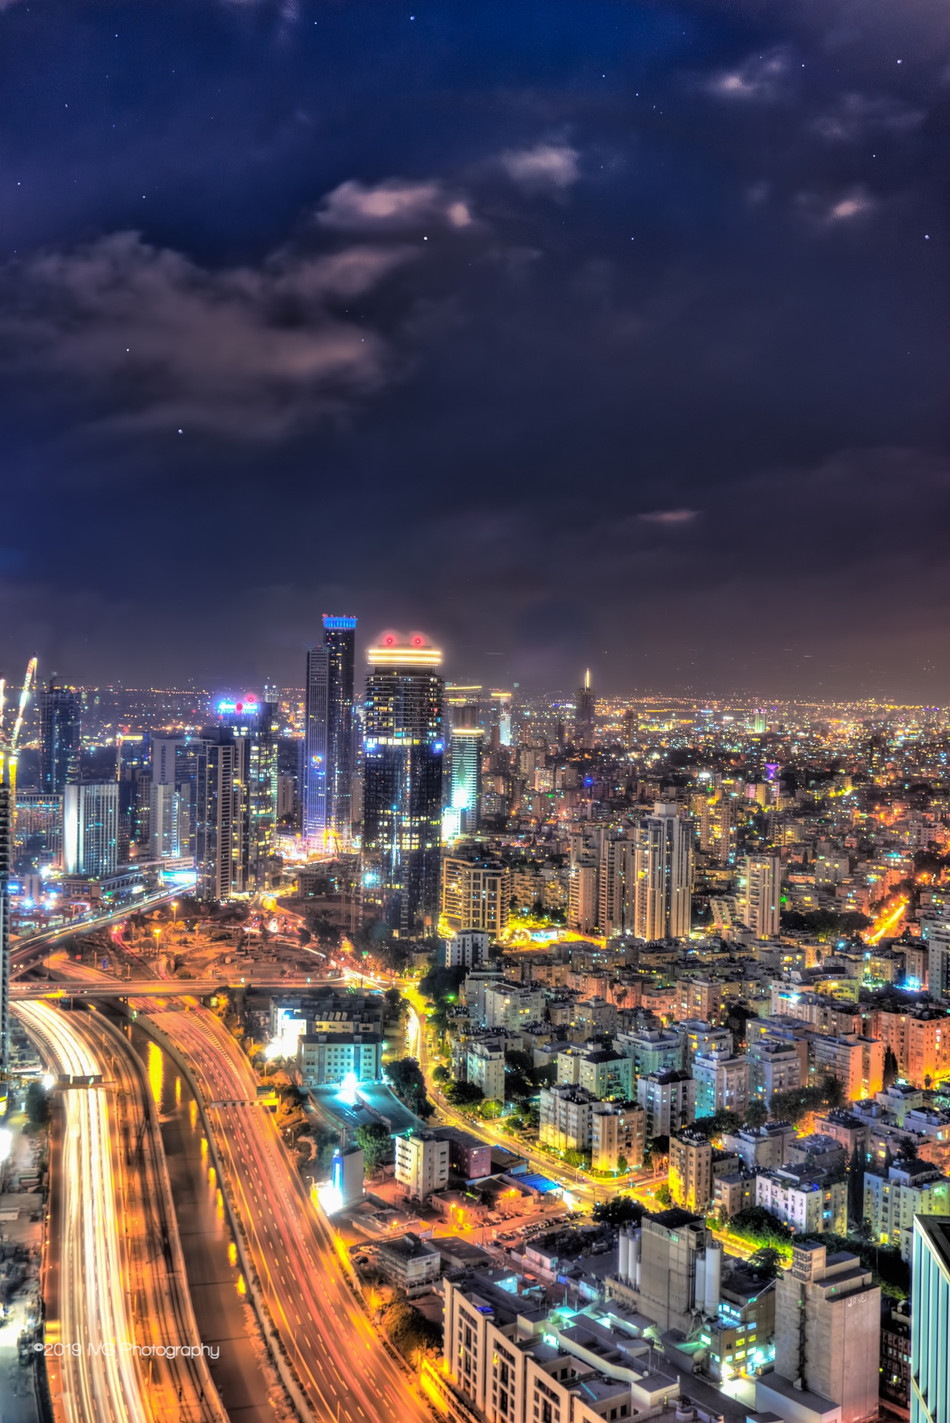 Tel Aviv at Night No. 2